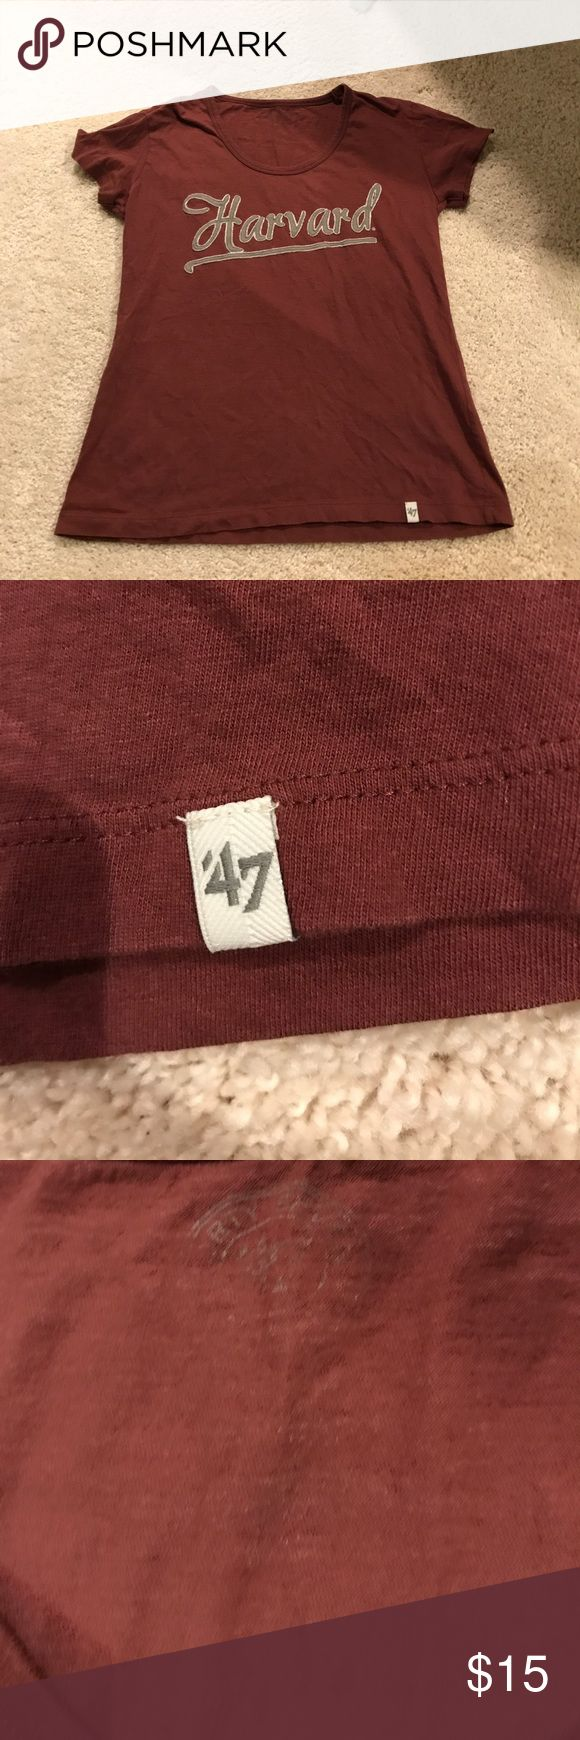 Harvard T Shirt Worn once- bought at Harvard University in Boston. The sizing part washed off as pictured. I believe it is a small. I wear a size 6 in tops and it's just a little tight. There's a small H accent on the sleeve and it has a scoop neck with cool cursive writing.  It's the burgundy color of the school with grey lettering. Tops Tees - Short Sleeve